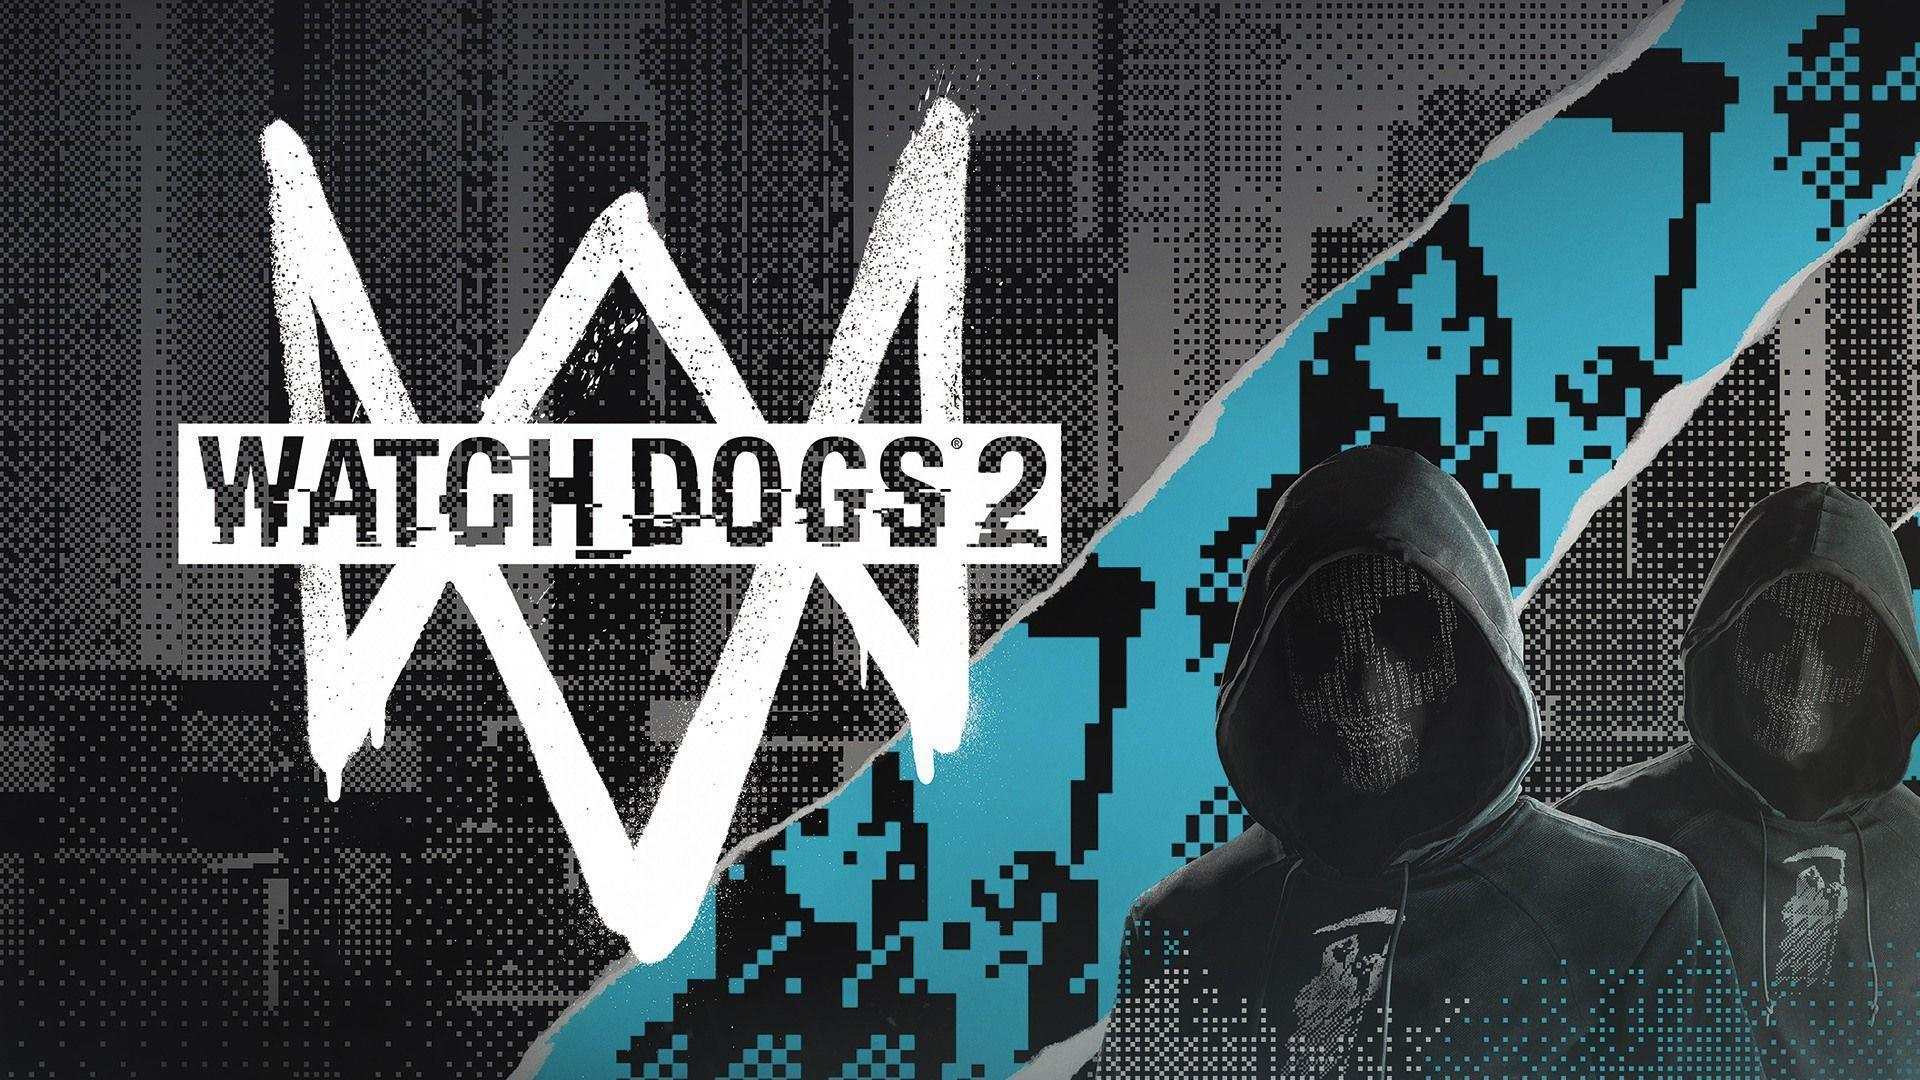 Watch Dogs 2 Hd Wallpapers Wallpaper Cave